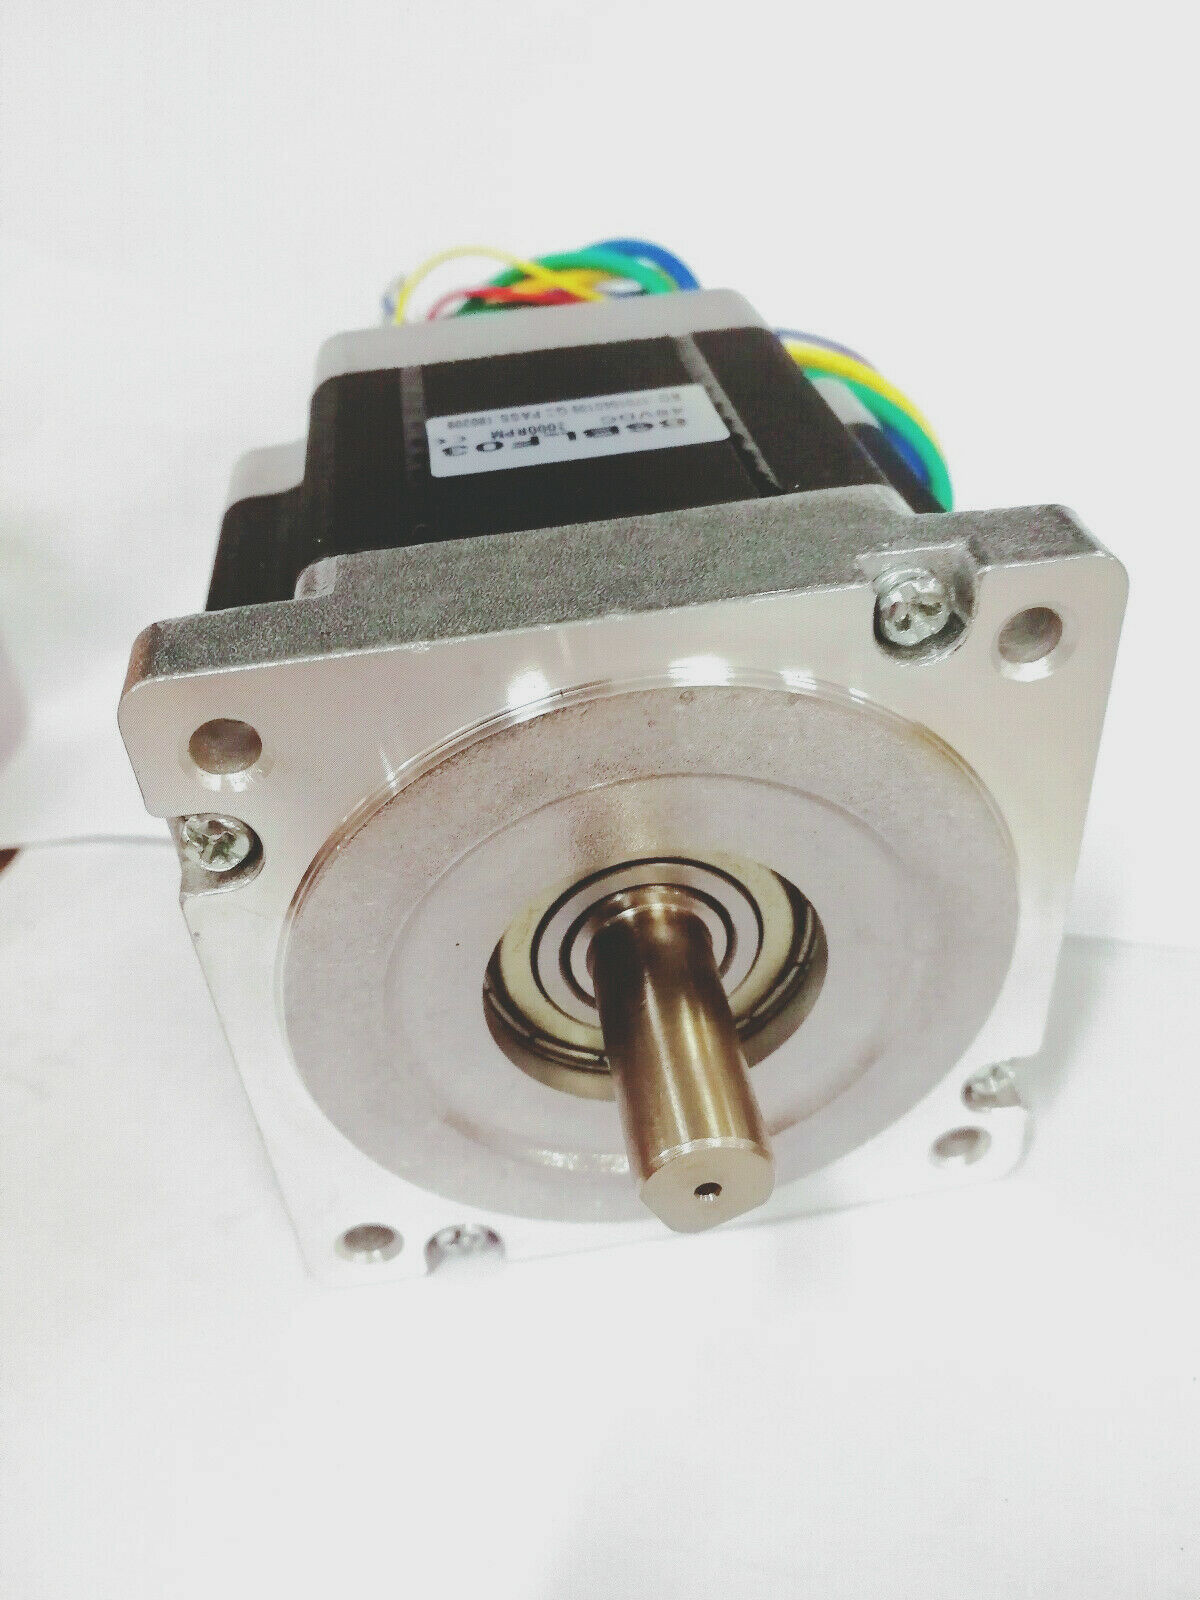 1axis Brushless DC Motor NEMA34 86BLF03 330W 48V 3000RPM DC Driver BLDC-8015A